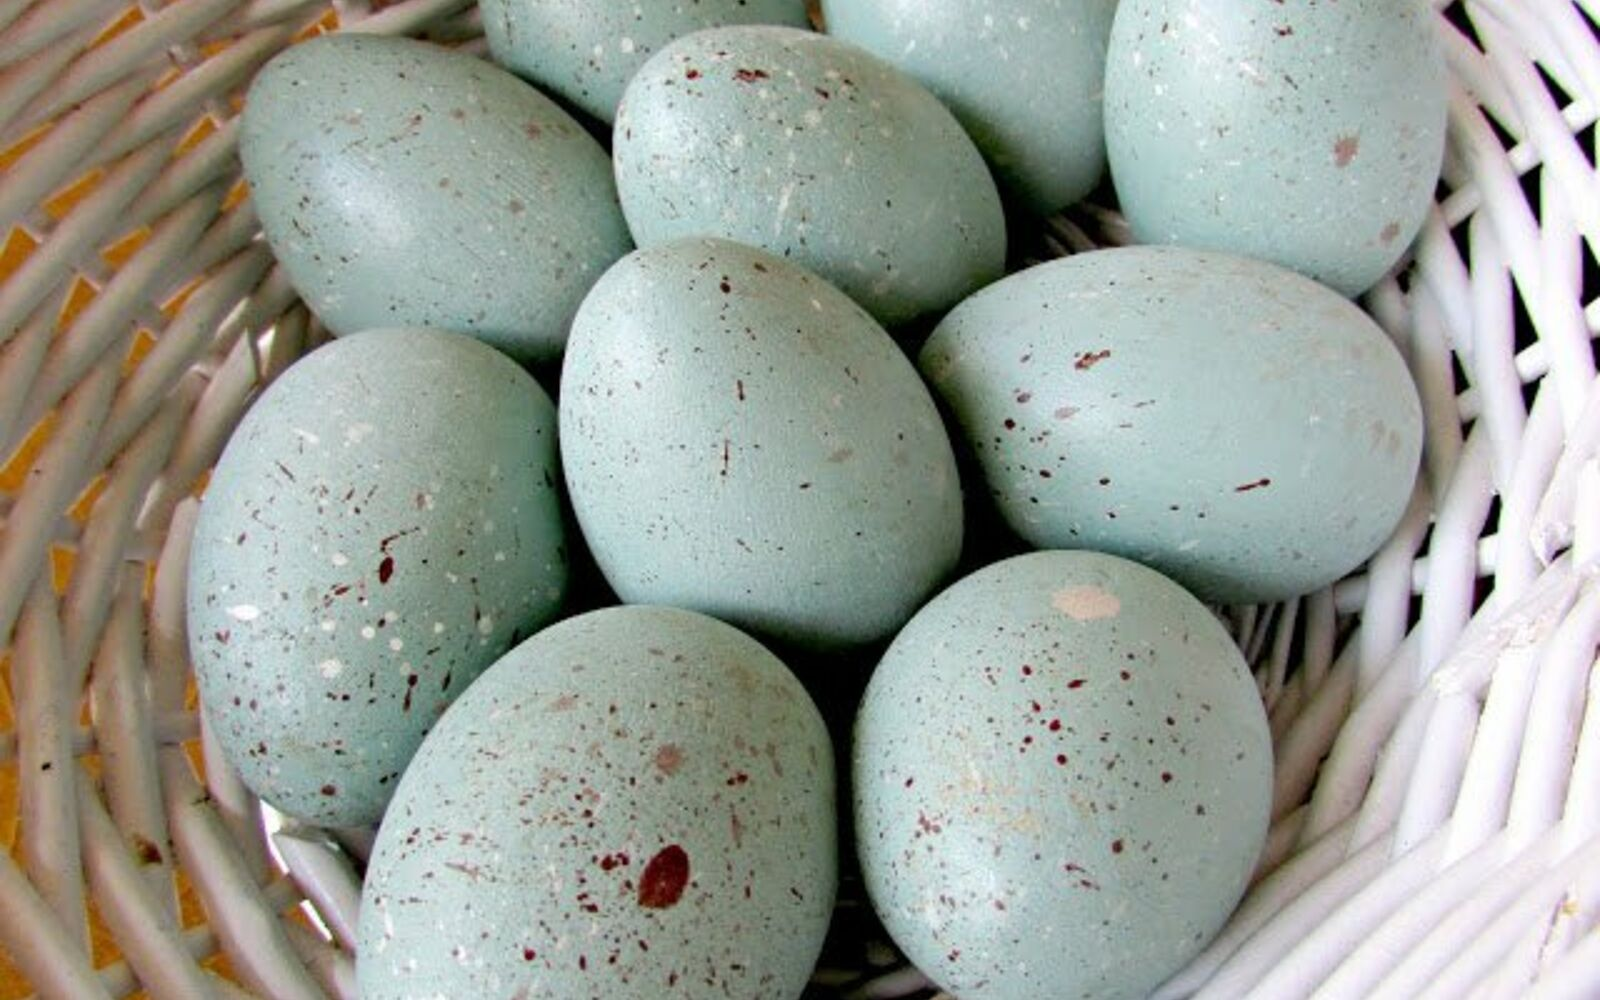 s 25 quick easter egg ideas that are just too stinkin cute, crafts, easter decorations, Make your own speckled robin s eggs